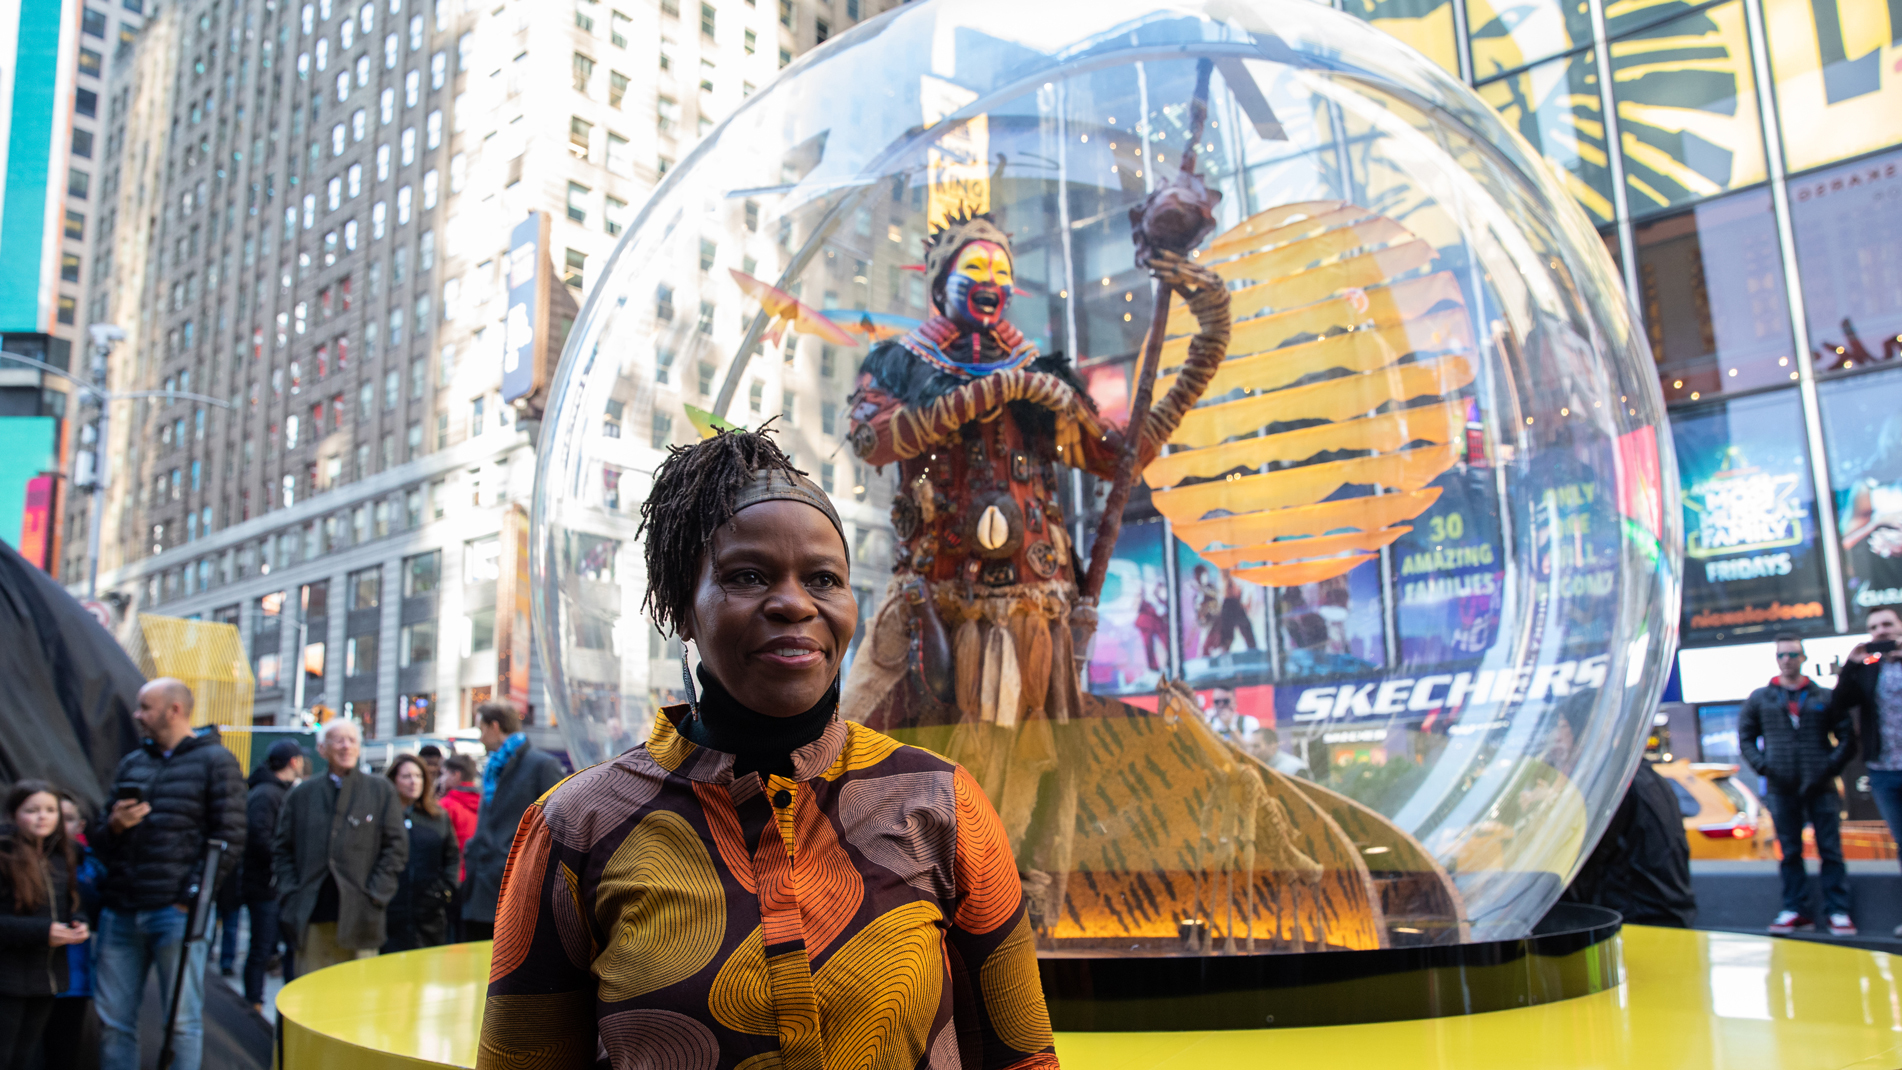 Four giant Broadway snow globes were just unveiled in Times Square